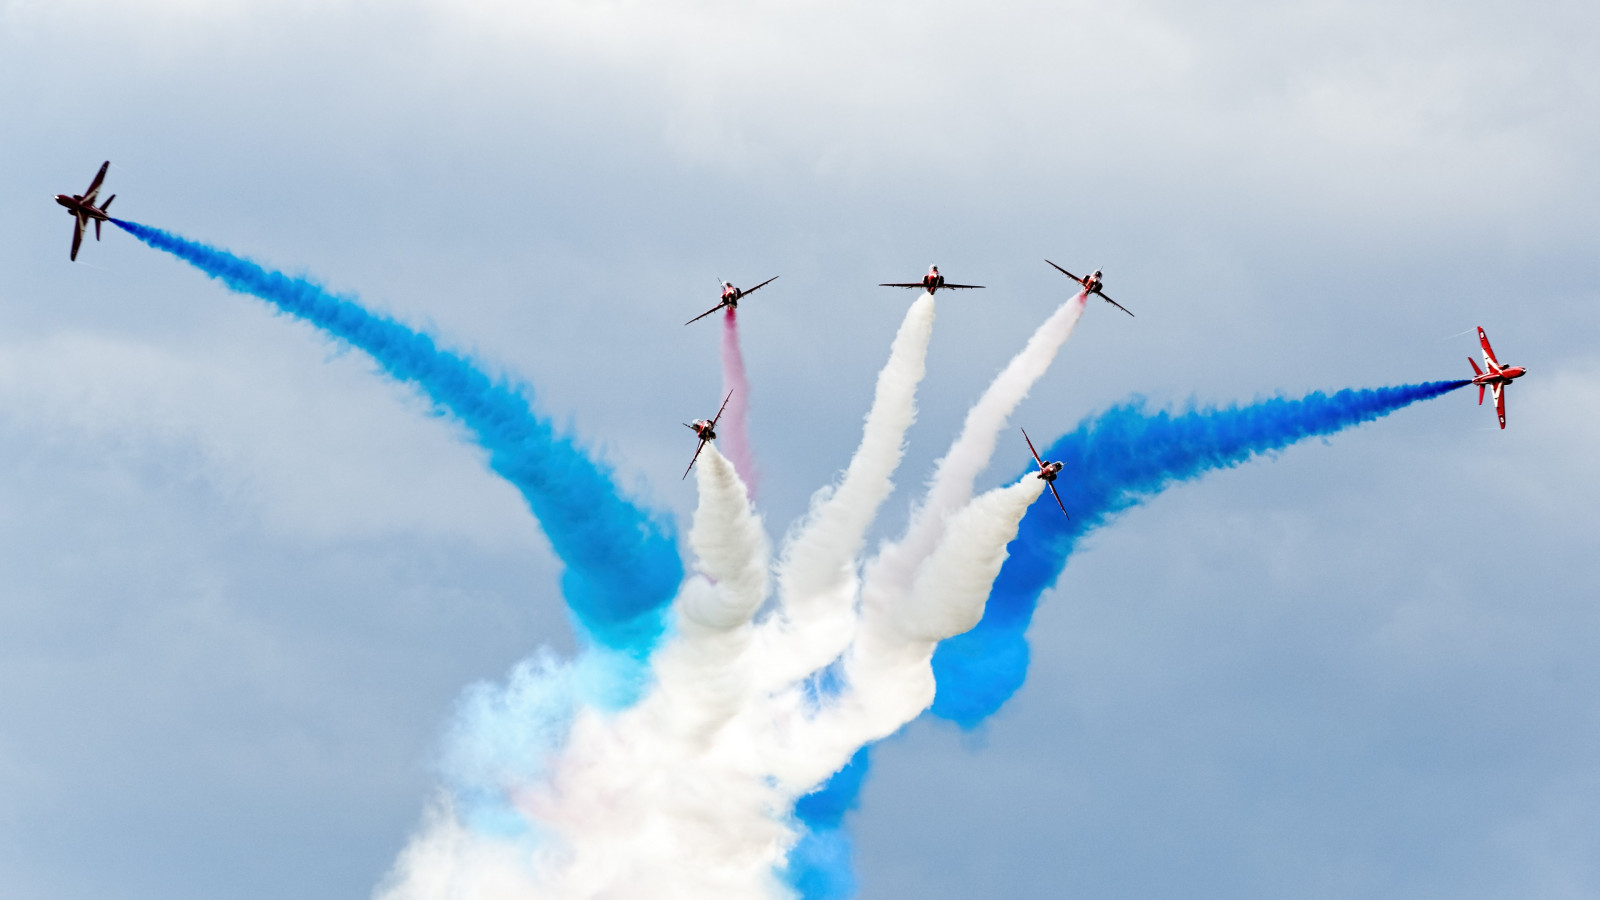 Red Arrows squadron wallpaper 1600x900